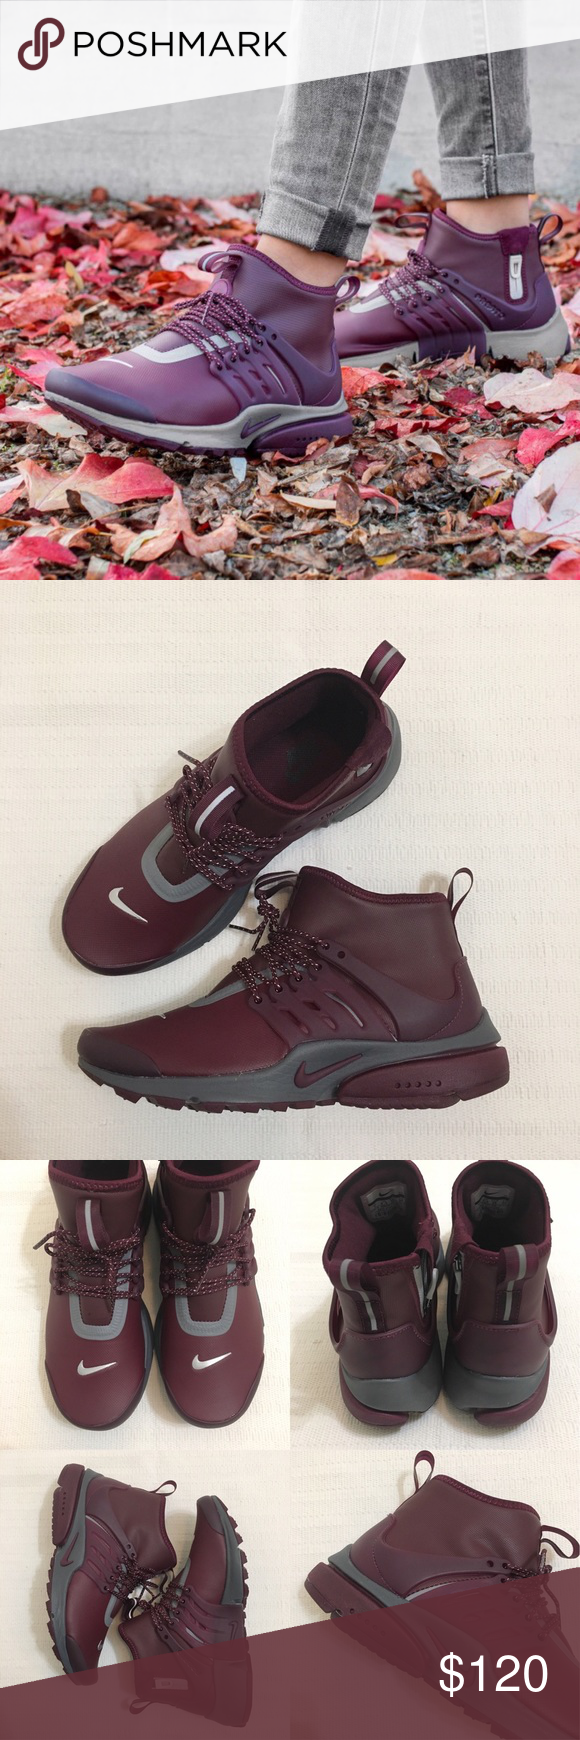 new style 3e02a 2f921 Women s Nike Air Presto Mid Utility Sneakers Women s Nike Air Presto Mid  Utility Night Maroon Sneakers